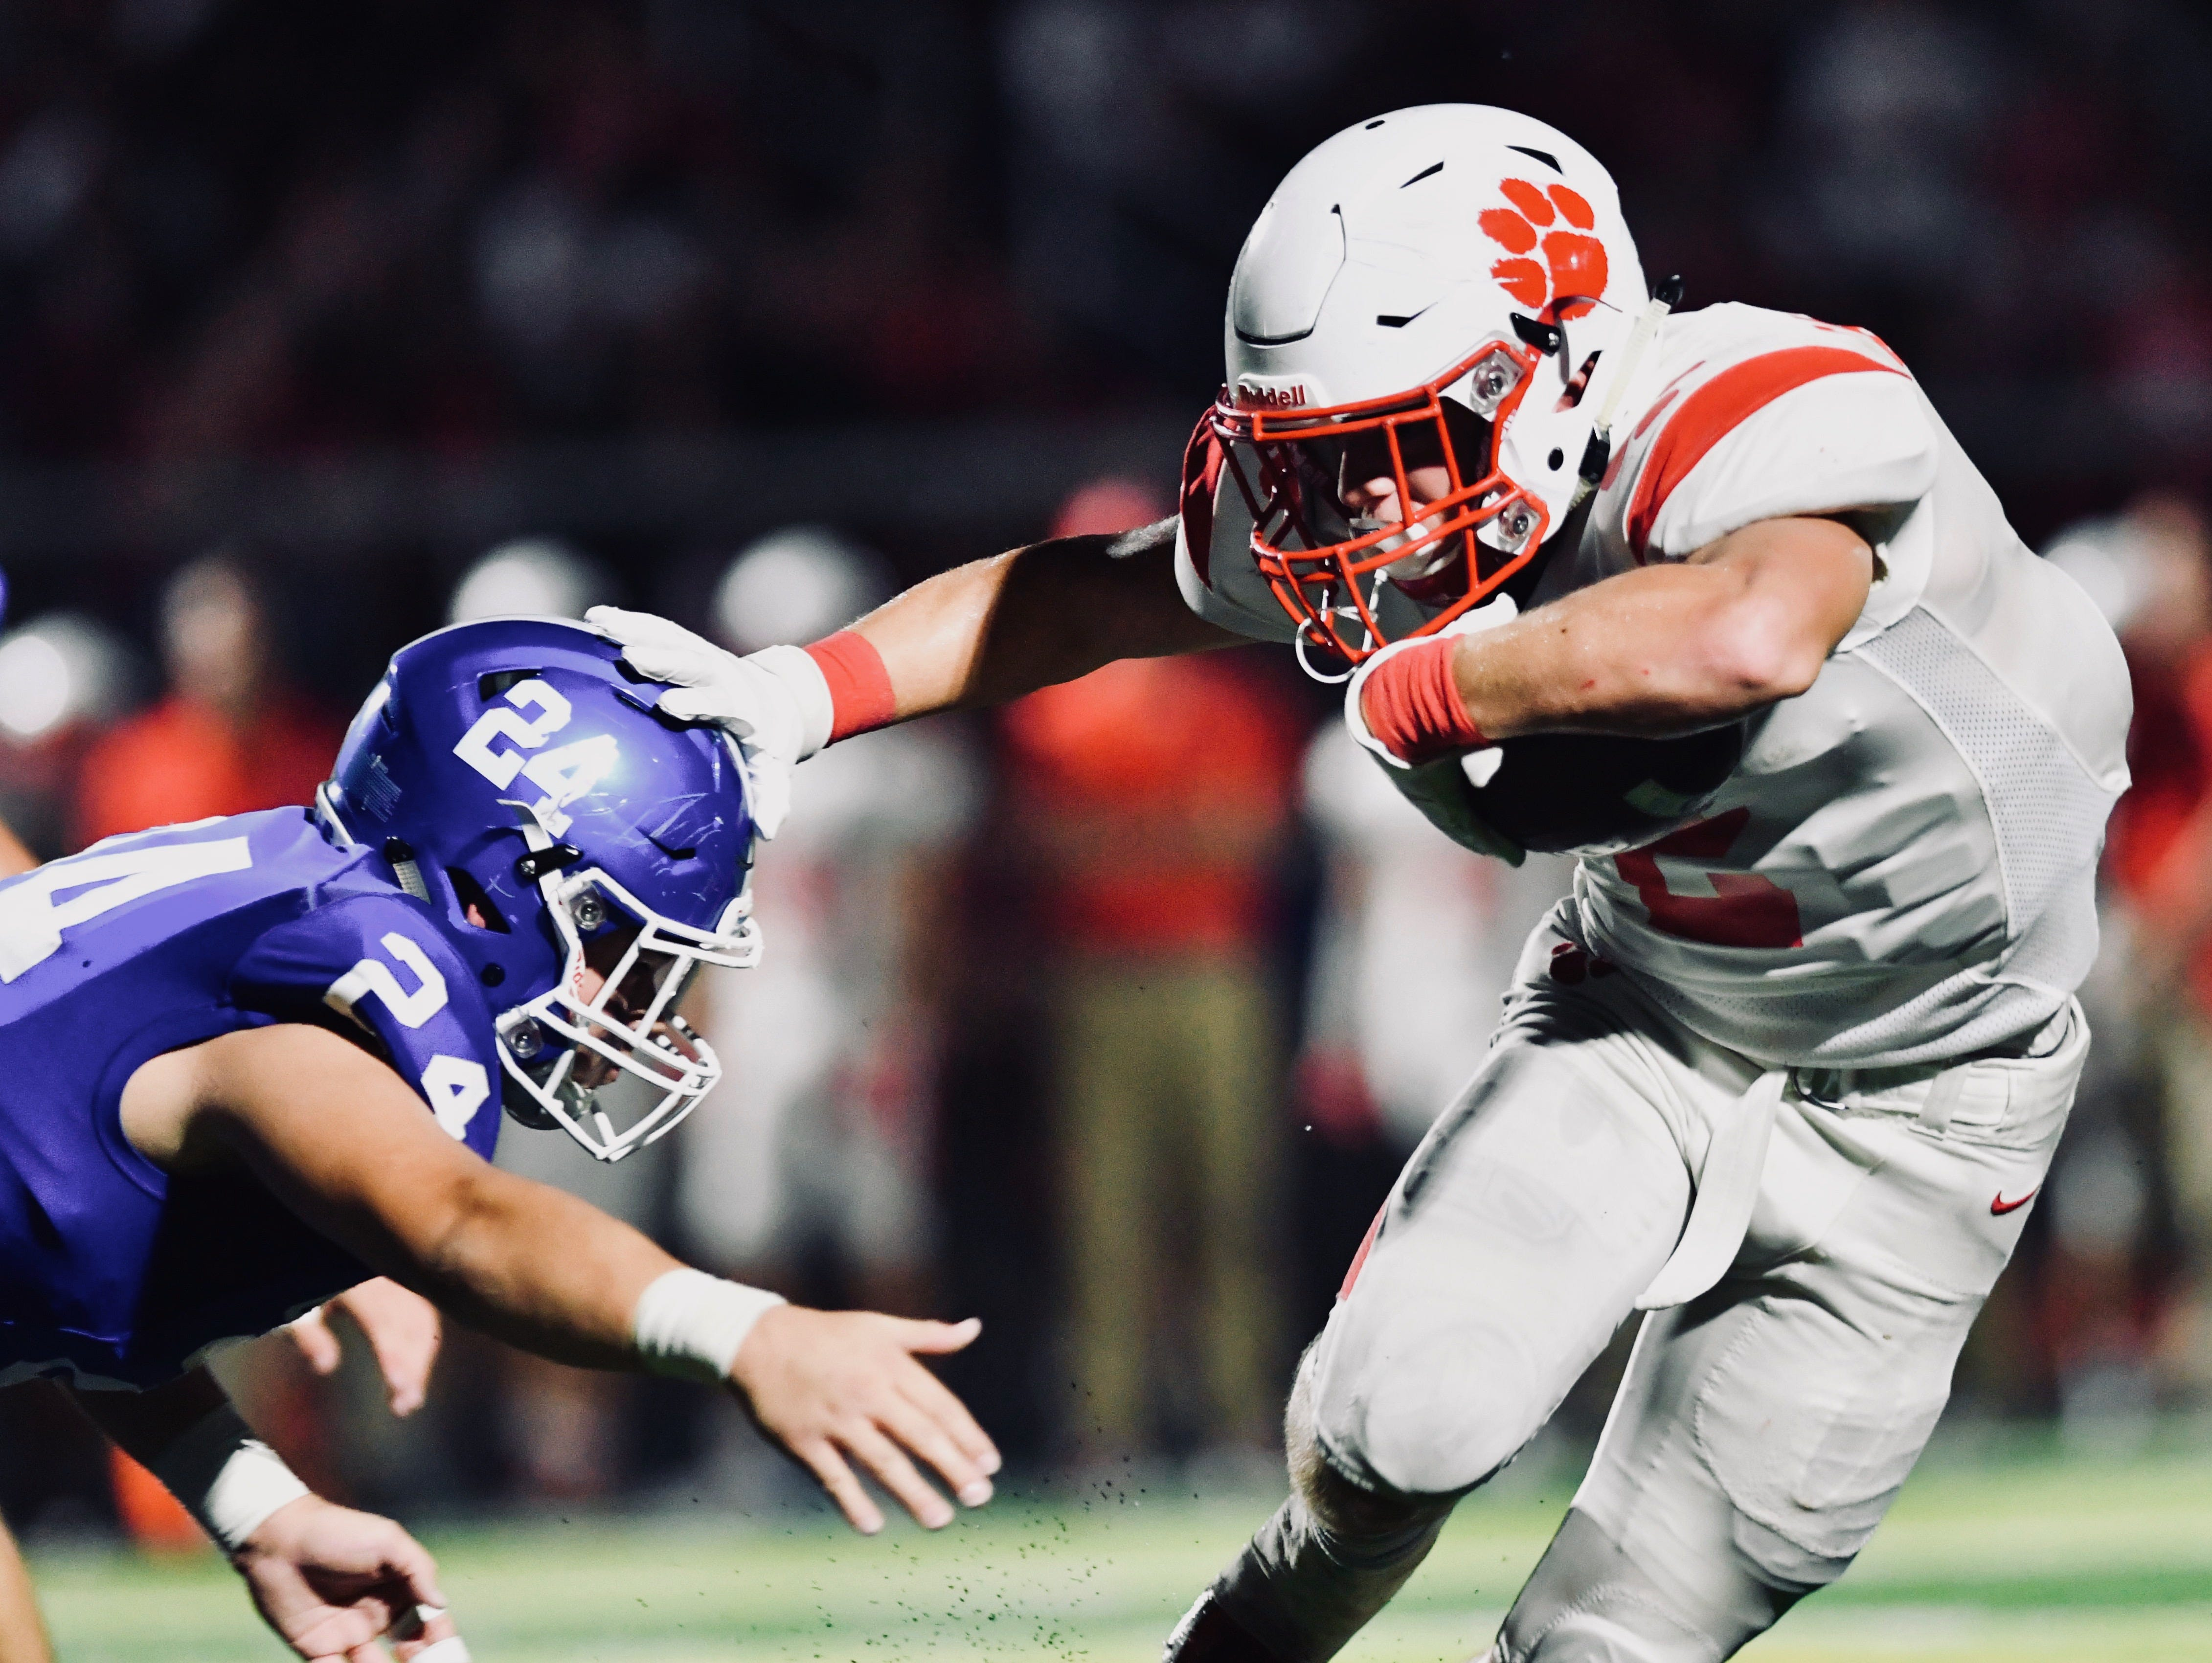 Beechwood's Logan Castleman lays a stiff arm on a Covington Catholic defender in the third quarter Friday, Sept. 14, 2018.